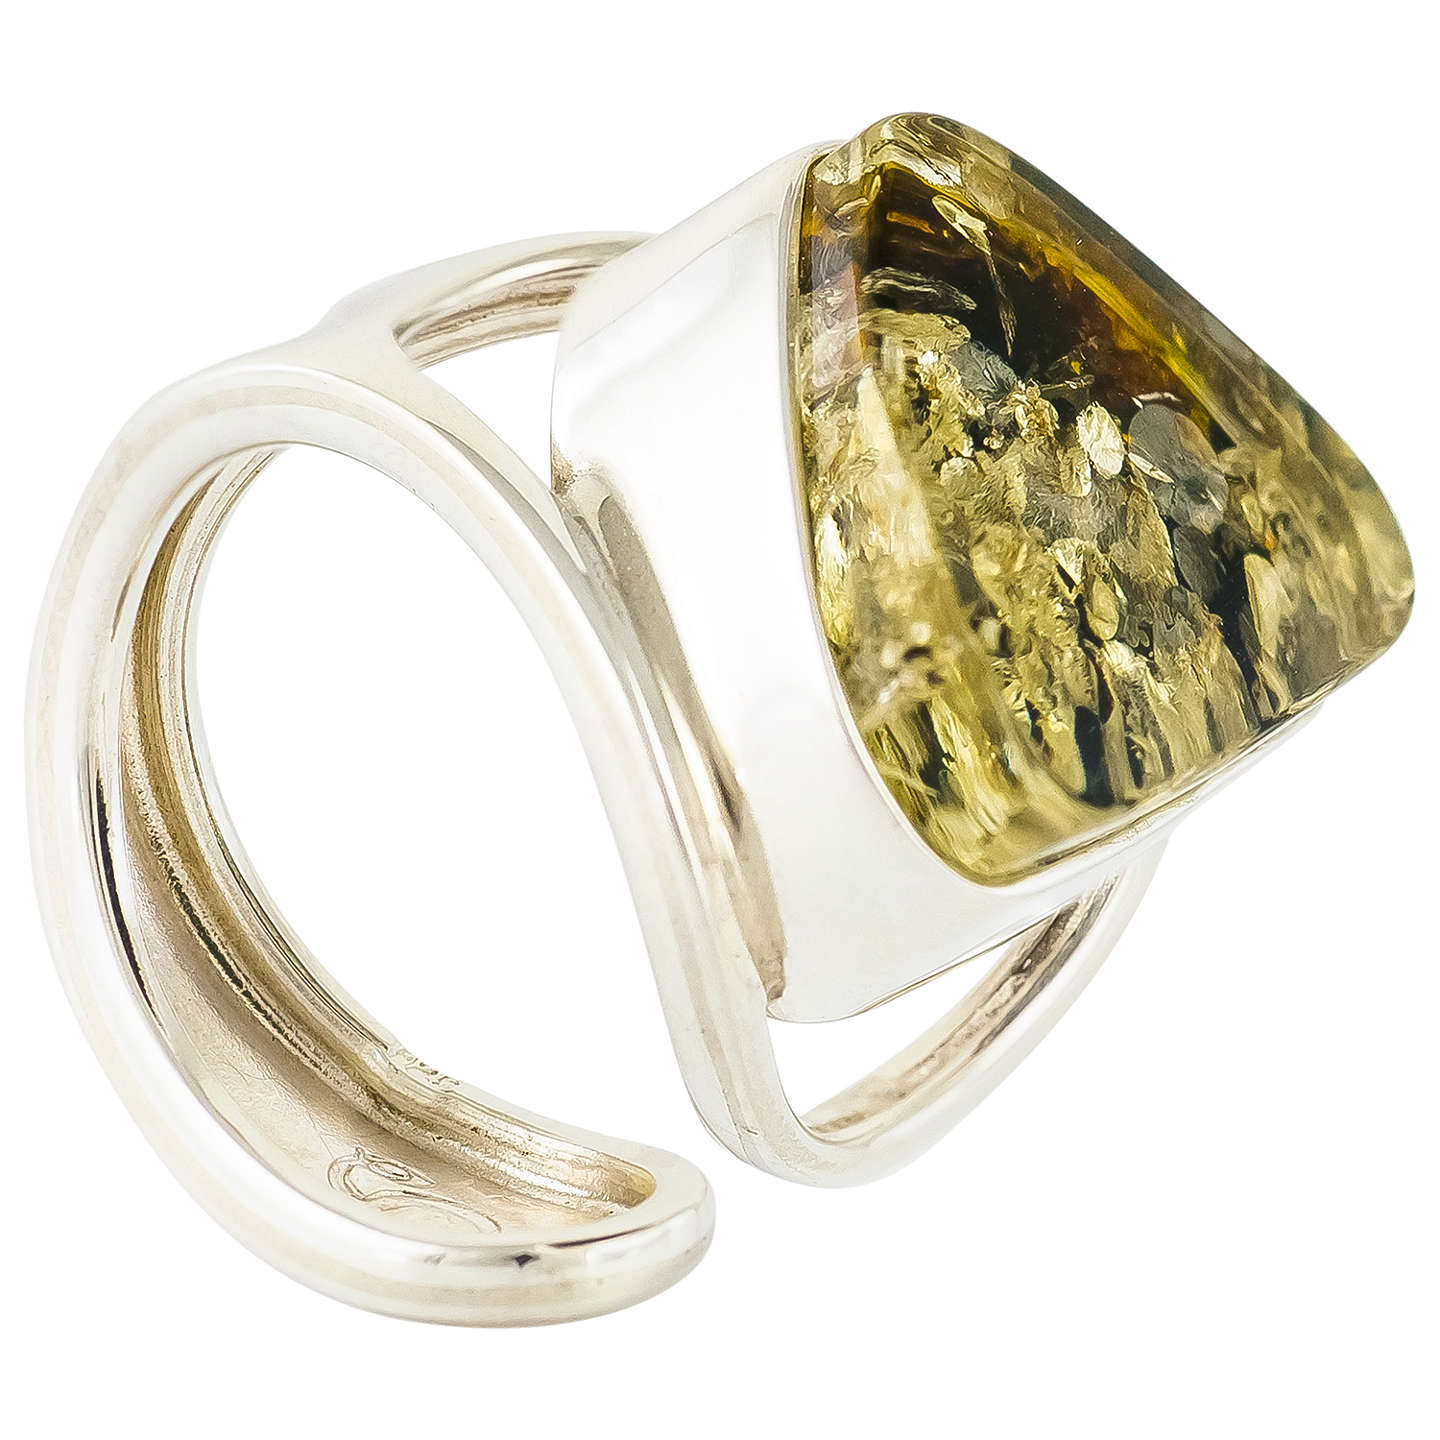 marlow white rings ring artcarved diamond amber in engagement ct rose and kt gold setting caymancode tw